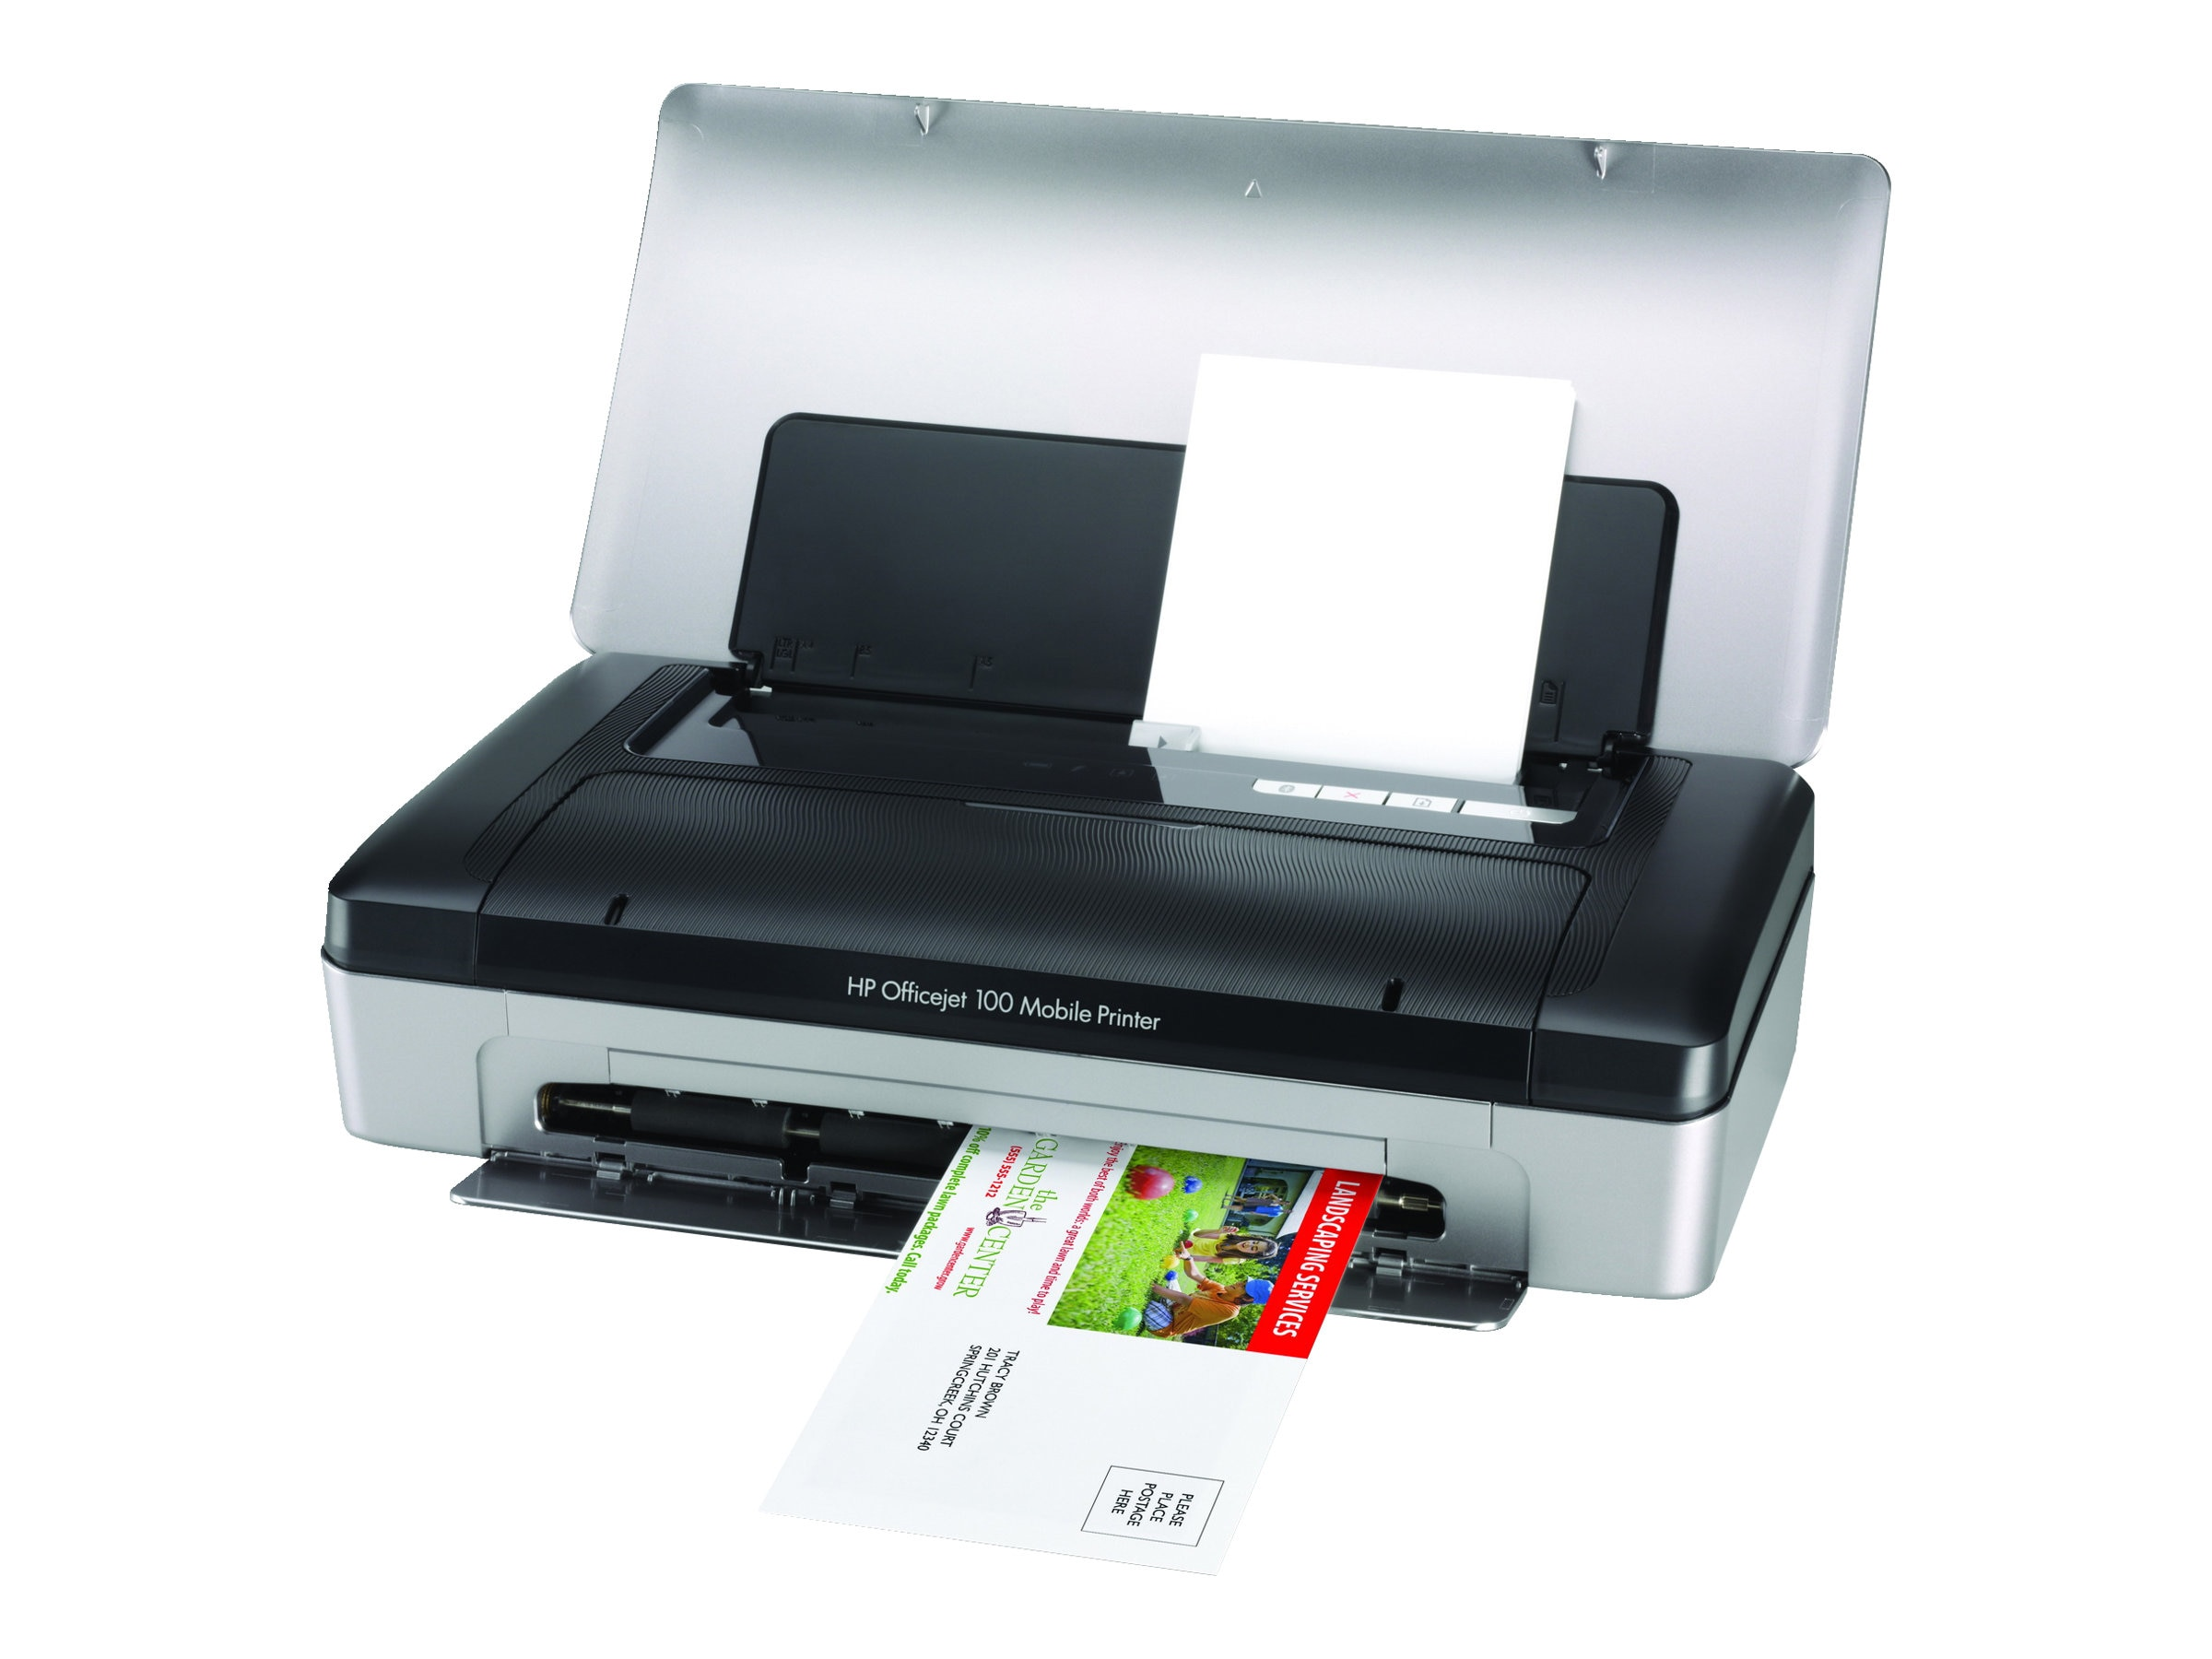 HP Officejet 100 Mobile Printer, CN551A#B1H, 12436119, Printers - Ink-jet